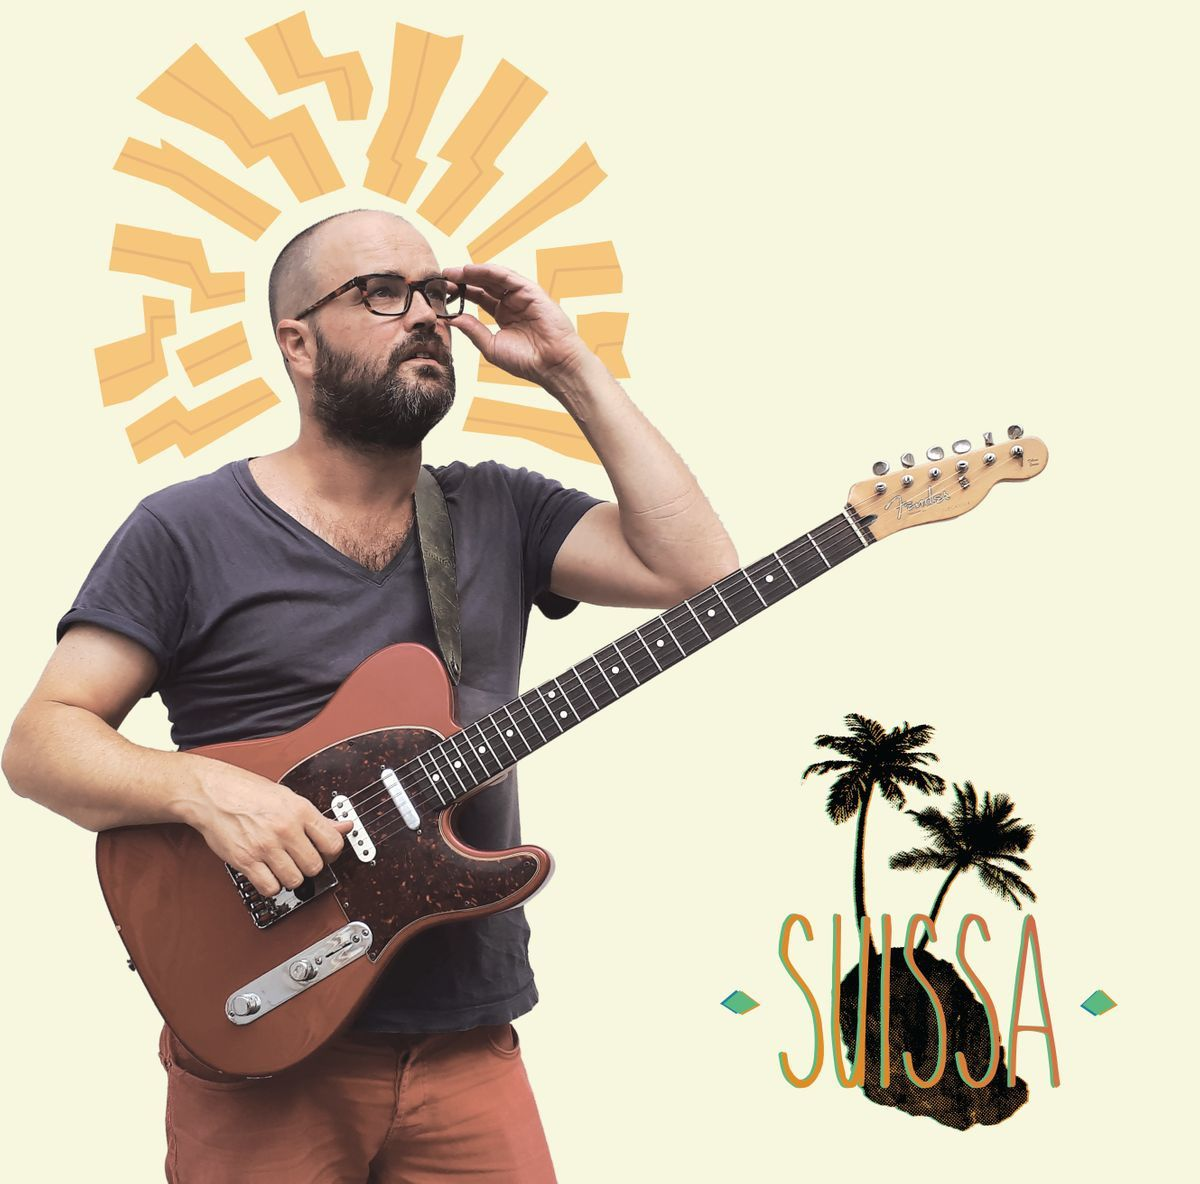 #Musique - #SUISSA - CONCERTS - NOUVEL ALBUM Animal savant !